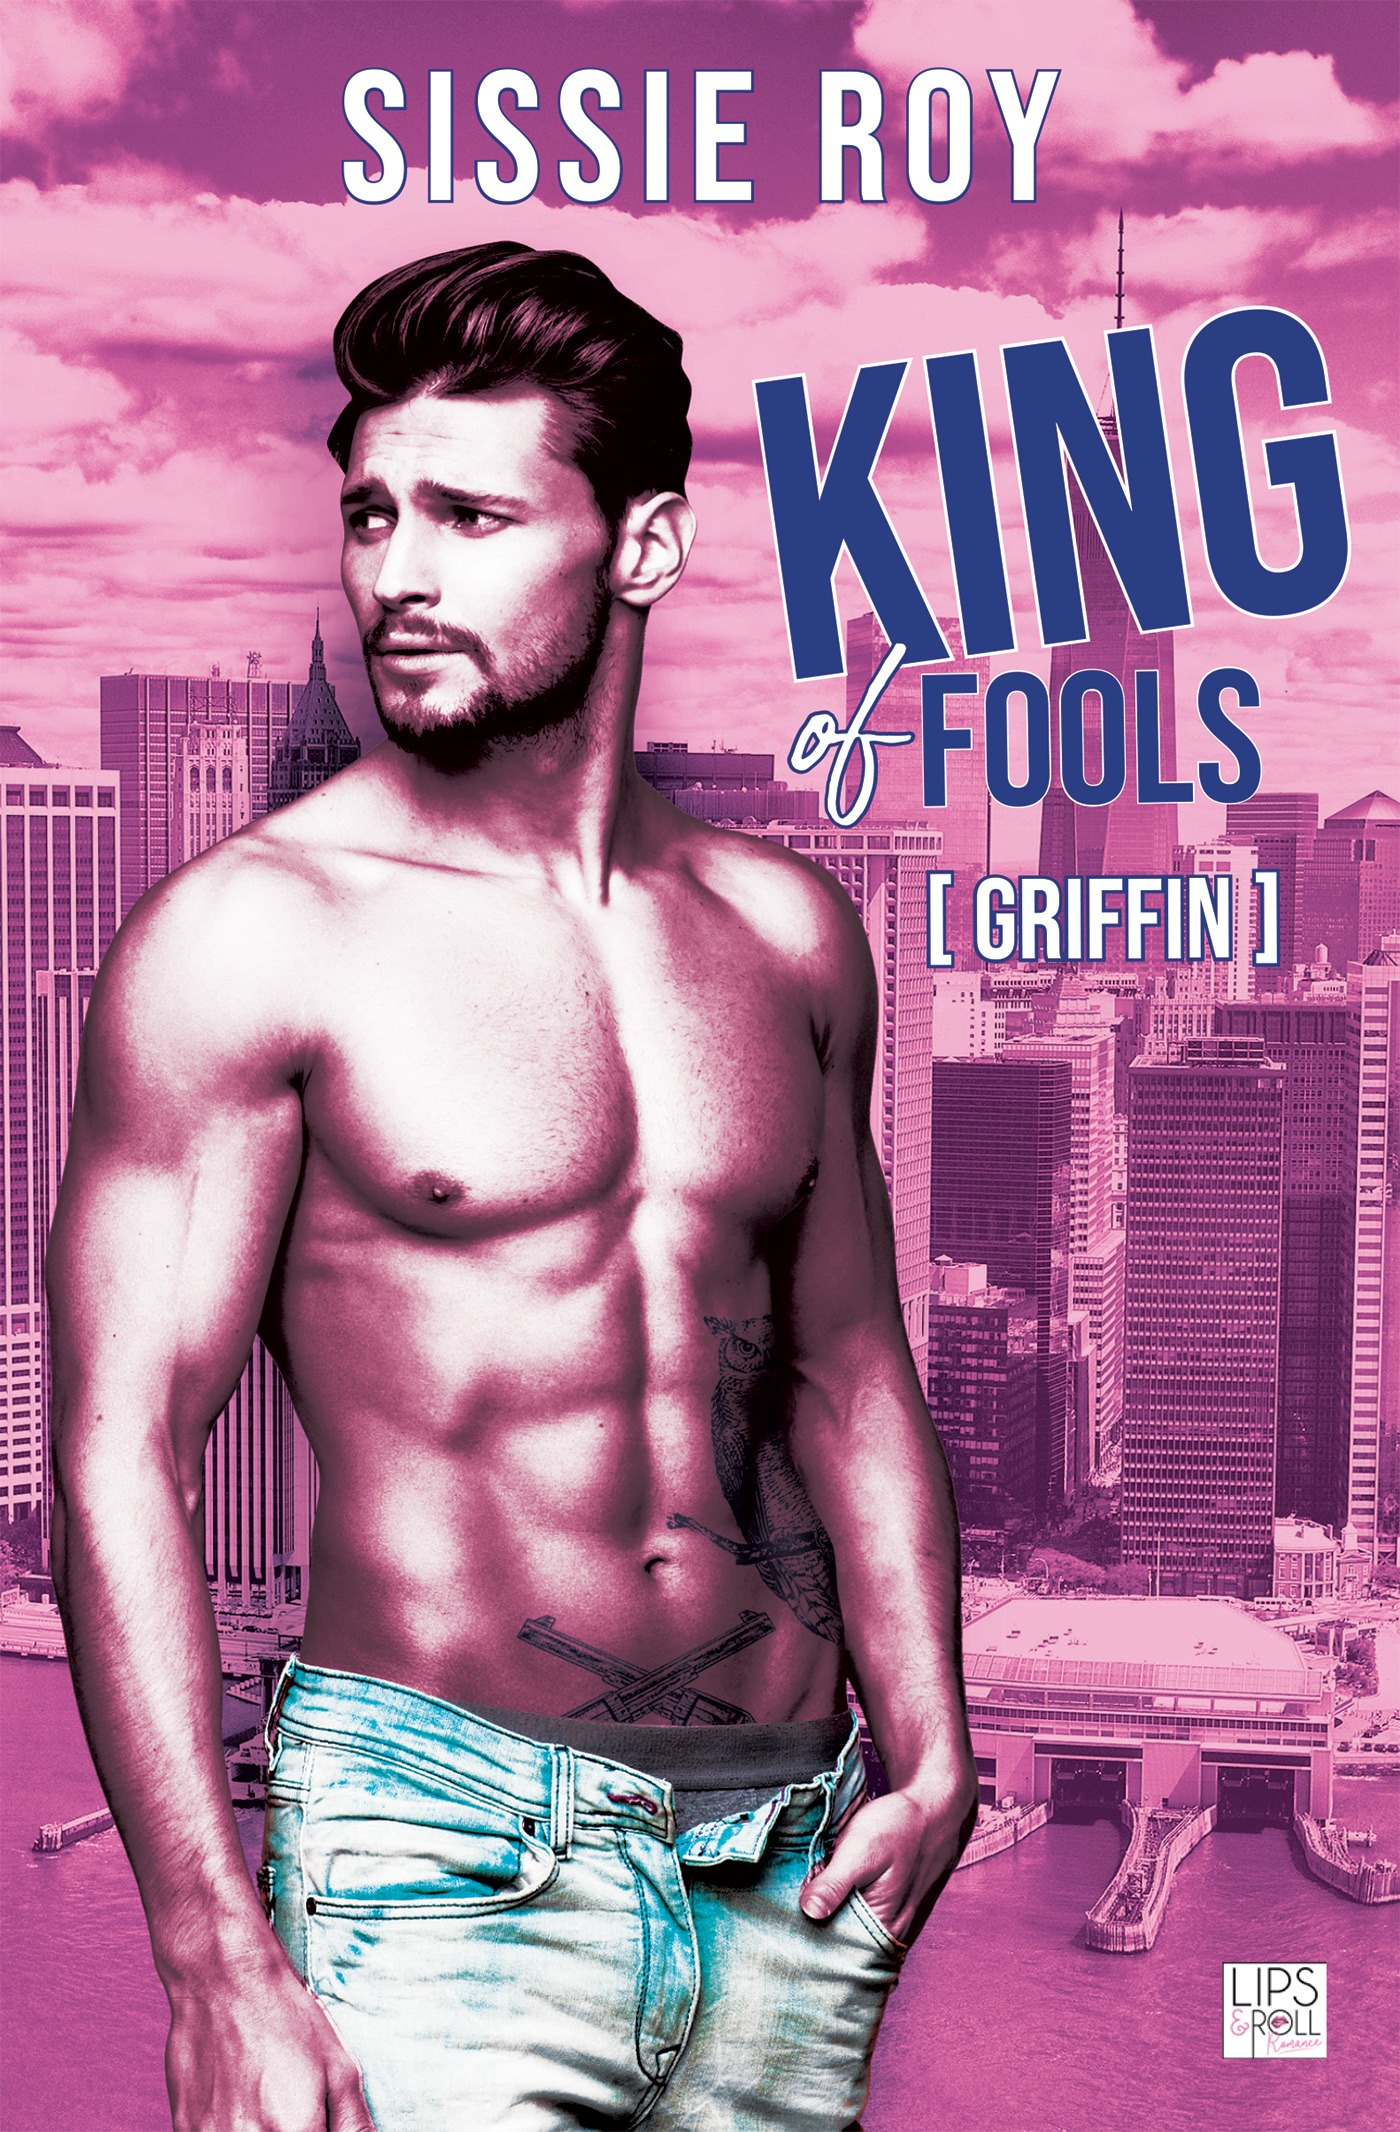 King of fools - Griffin